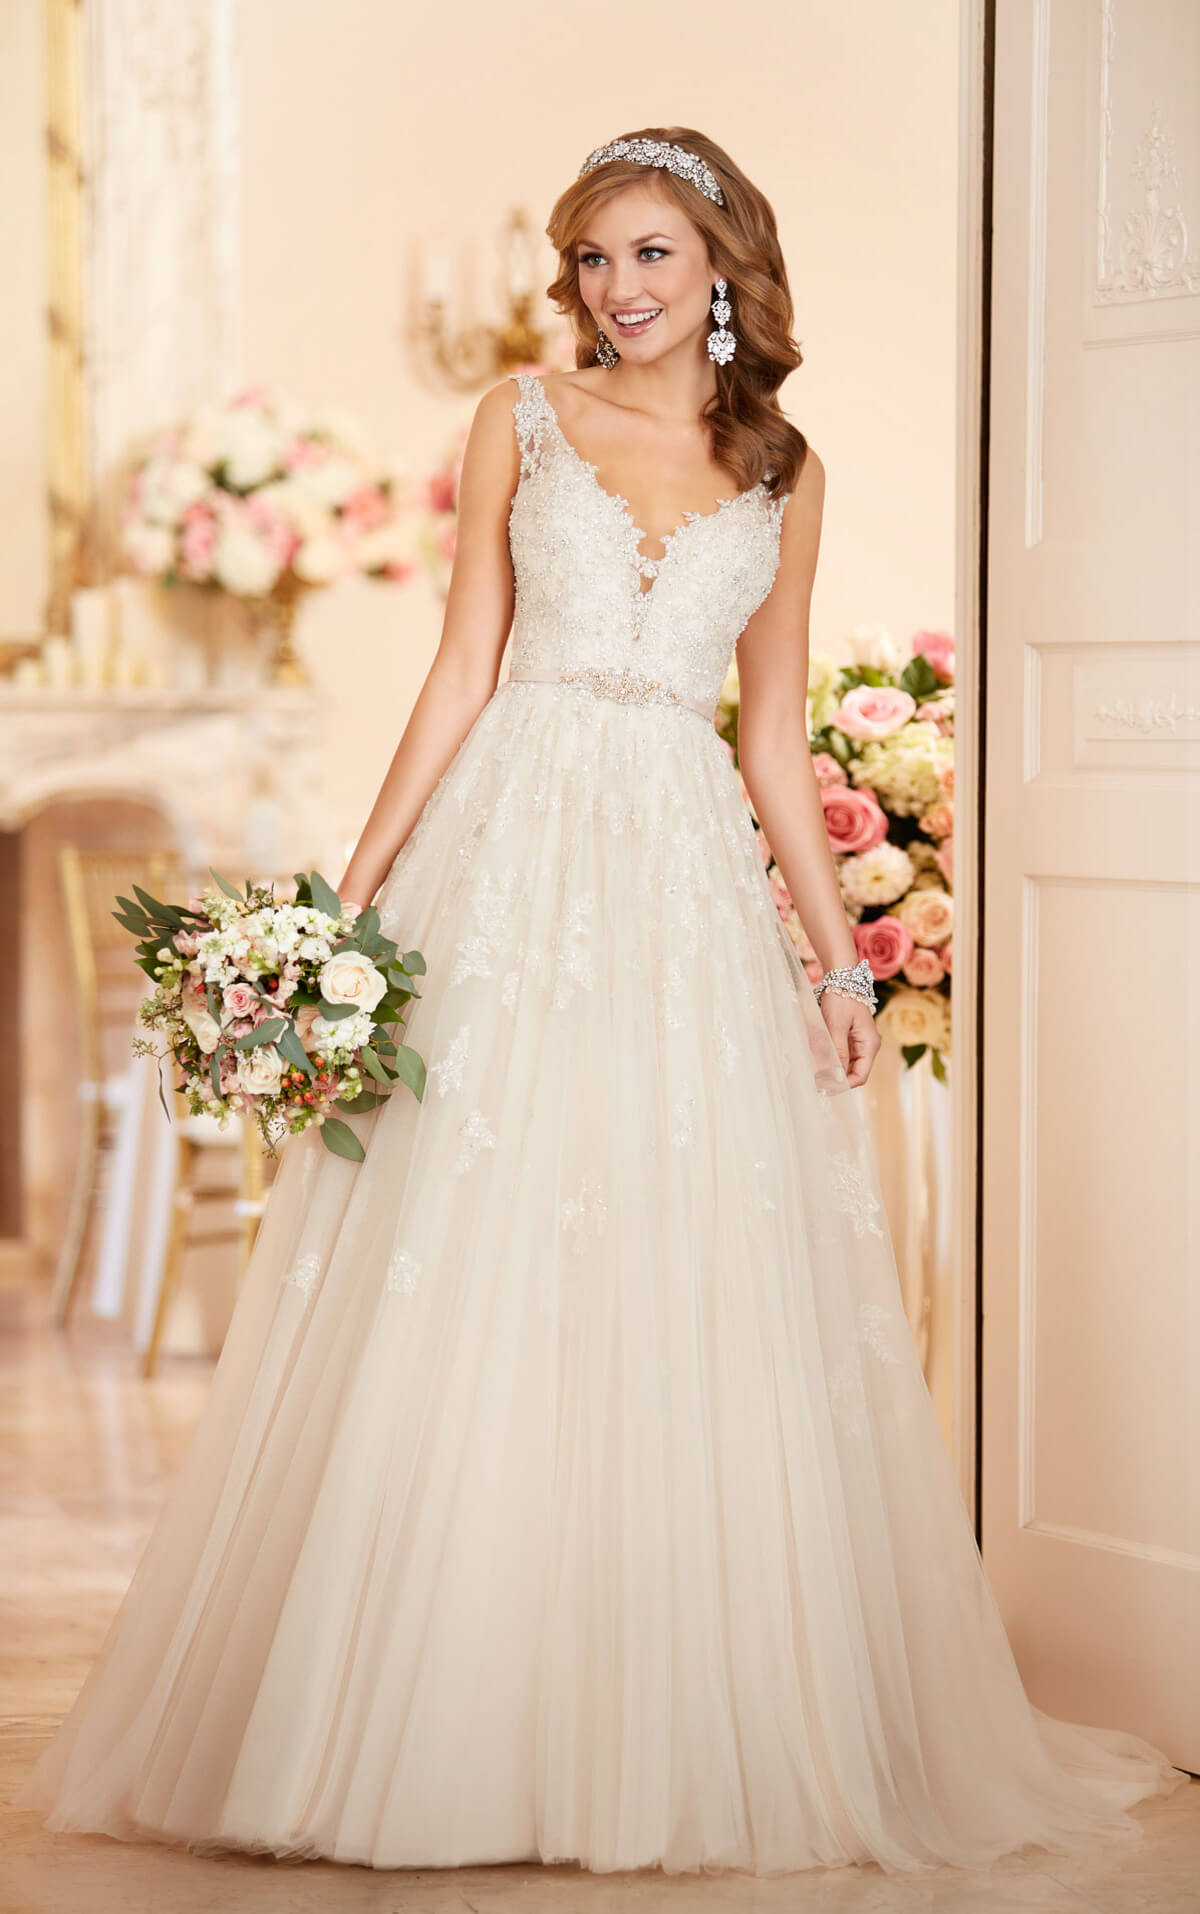 33 Trendiest A Line Wedding Dresses - EverAfterGuide